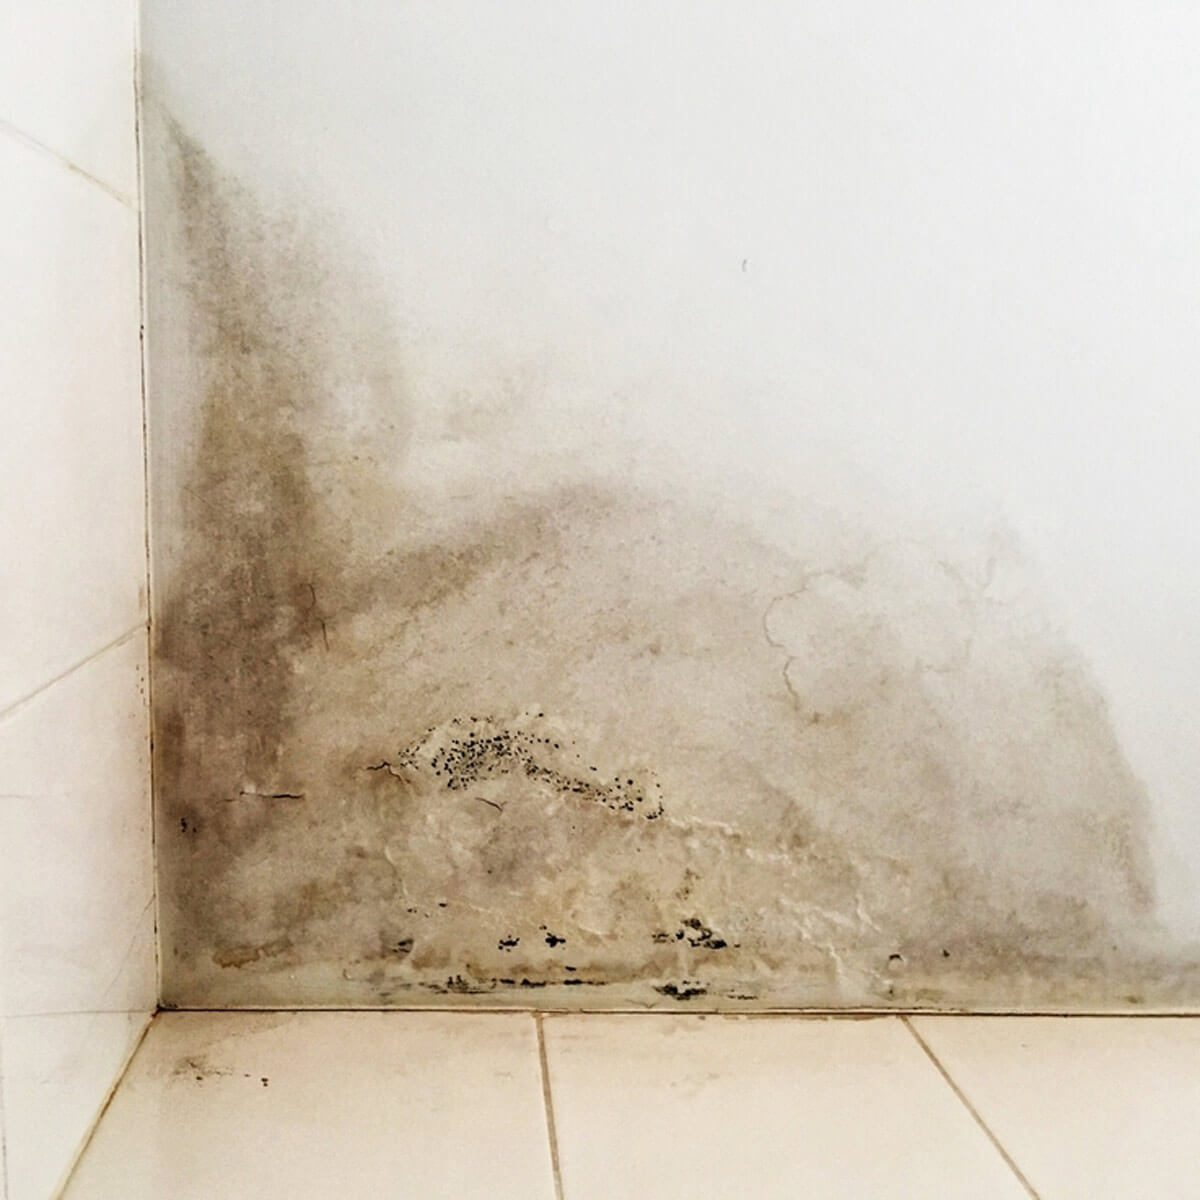 Inspect for Serious Issues like Mold